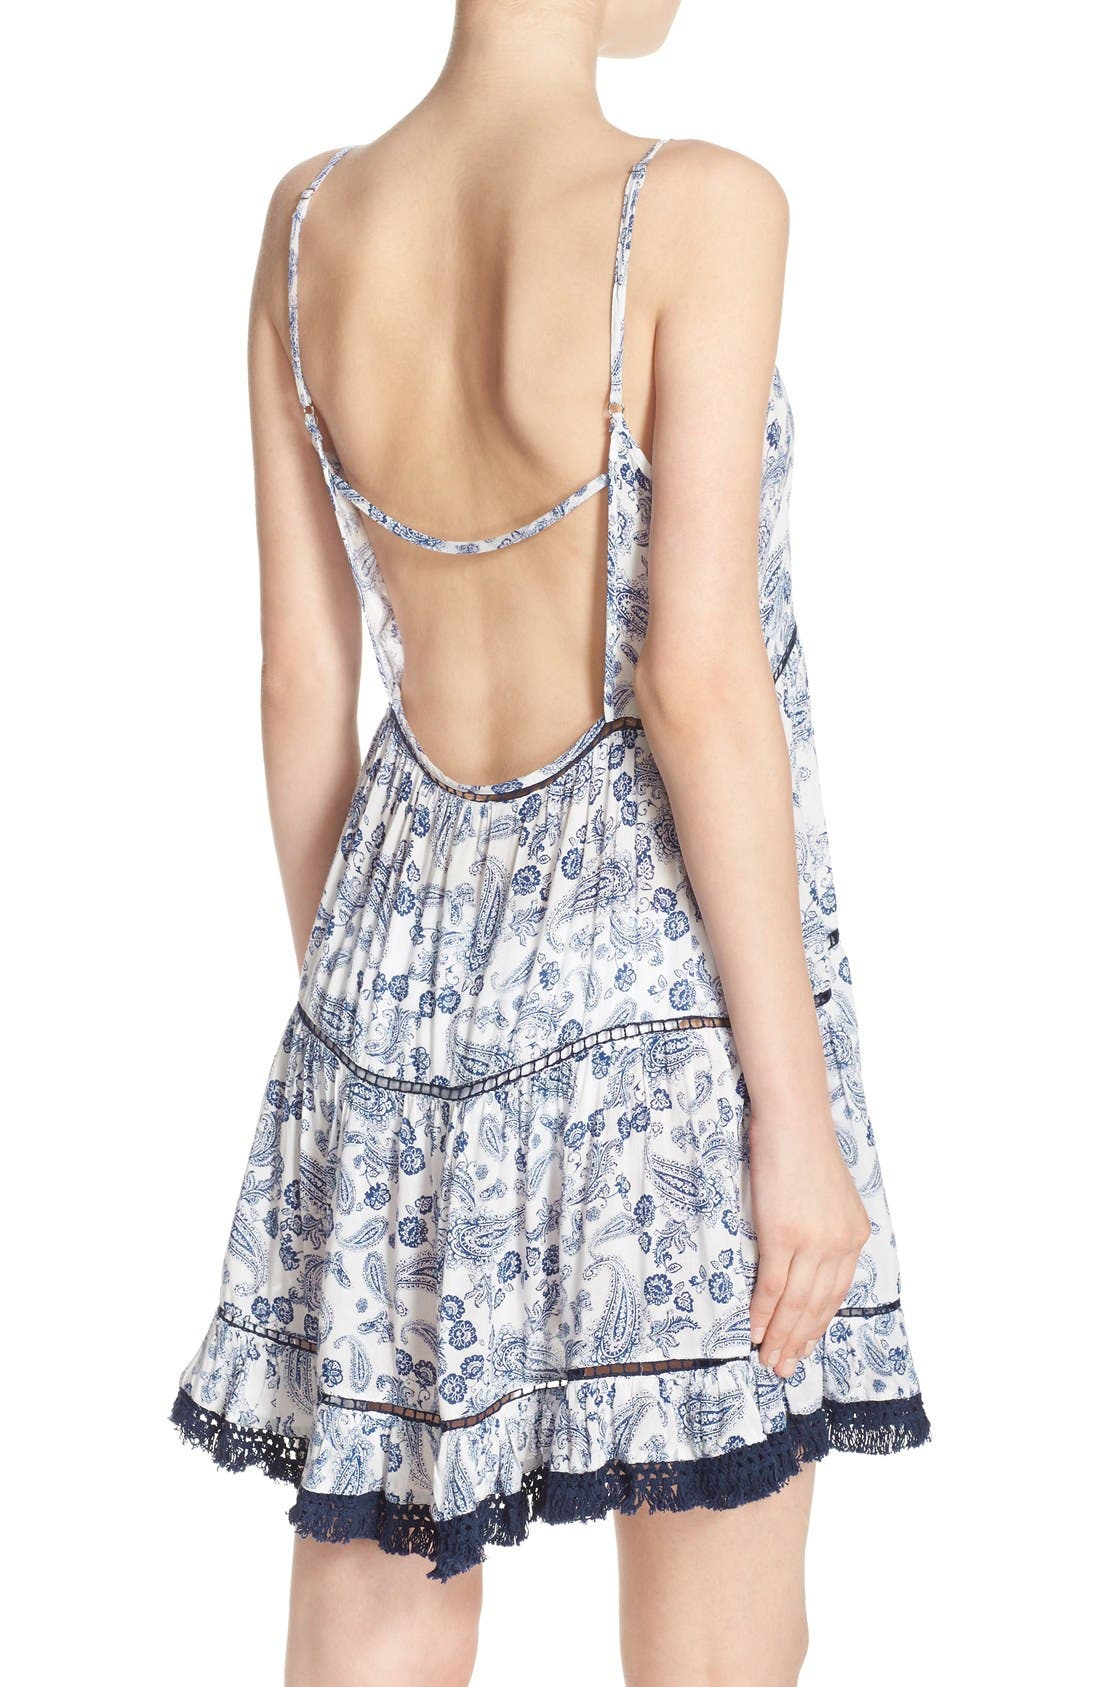 Alternate Image 1 Selected - Surf Gypsy Backless Babydoll Cover-Up Dress